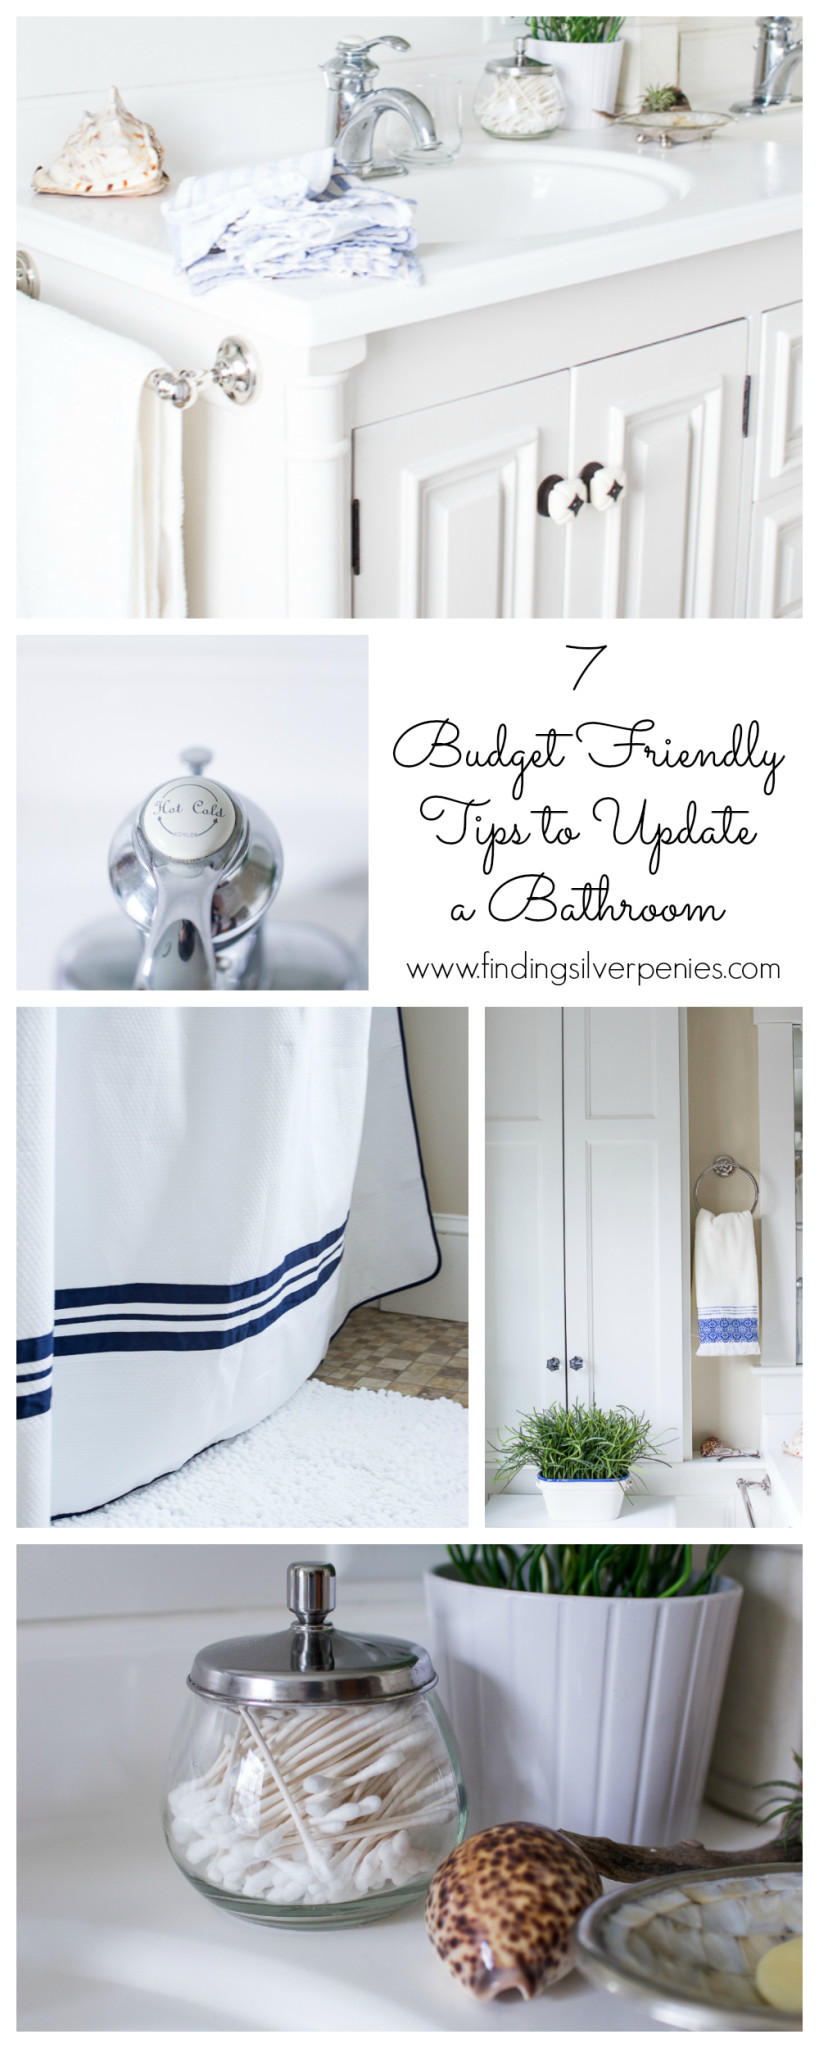 Budget Friendly Bathroom Tips